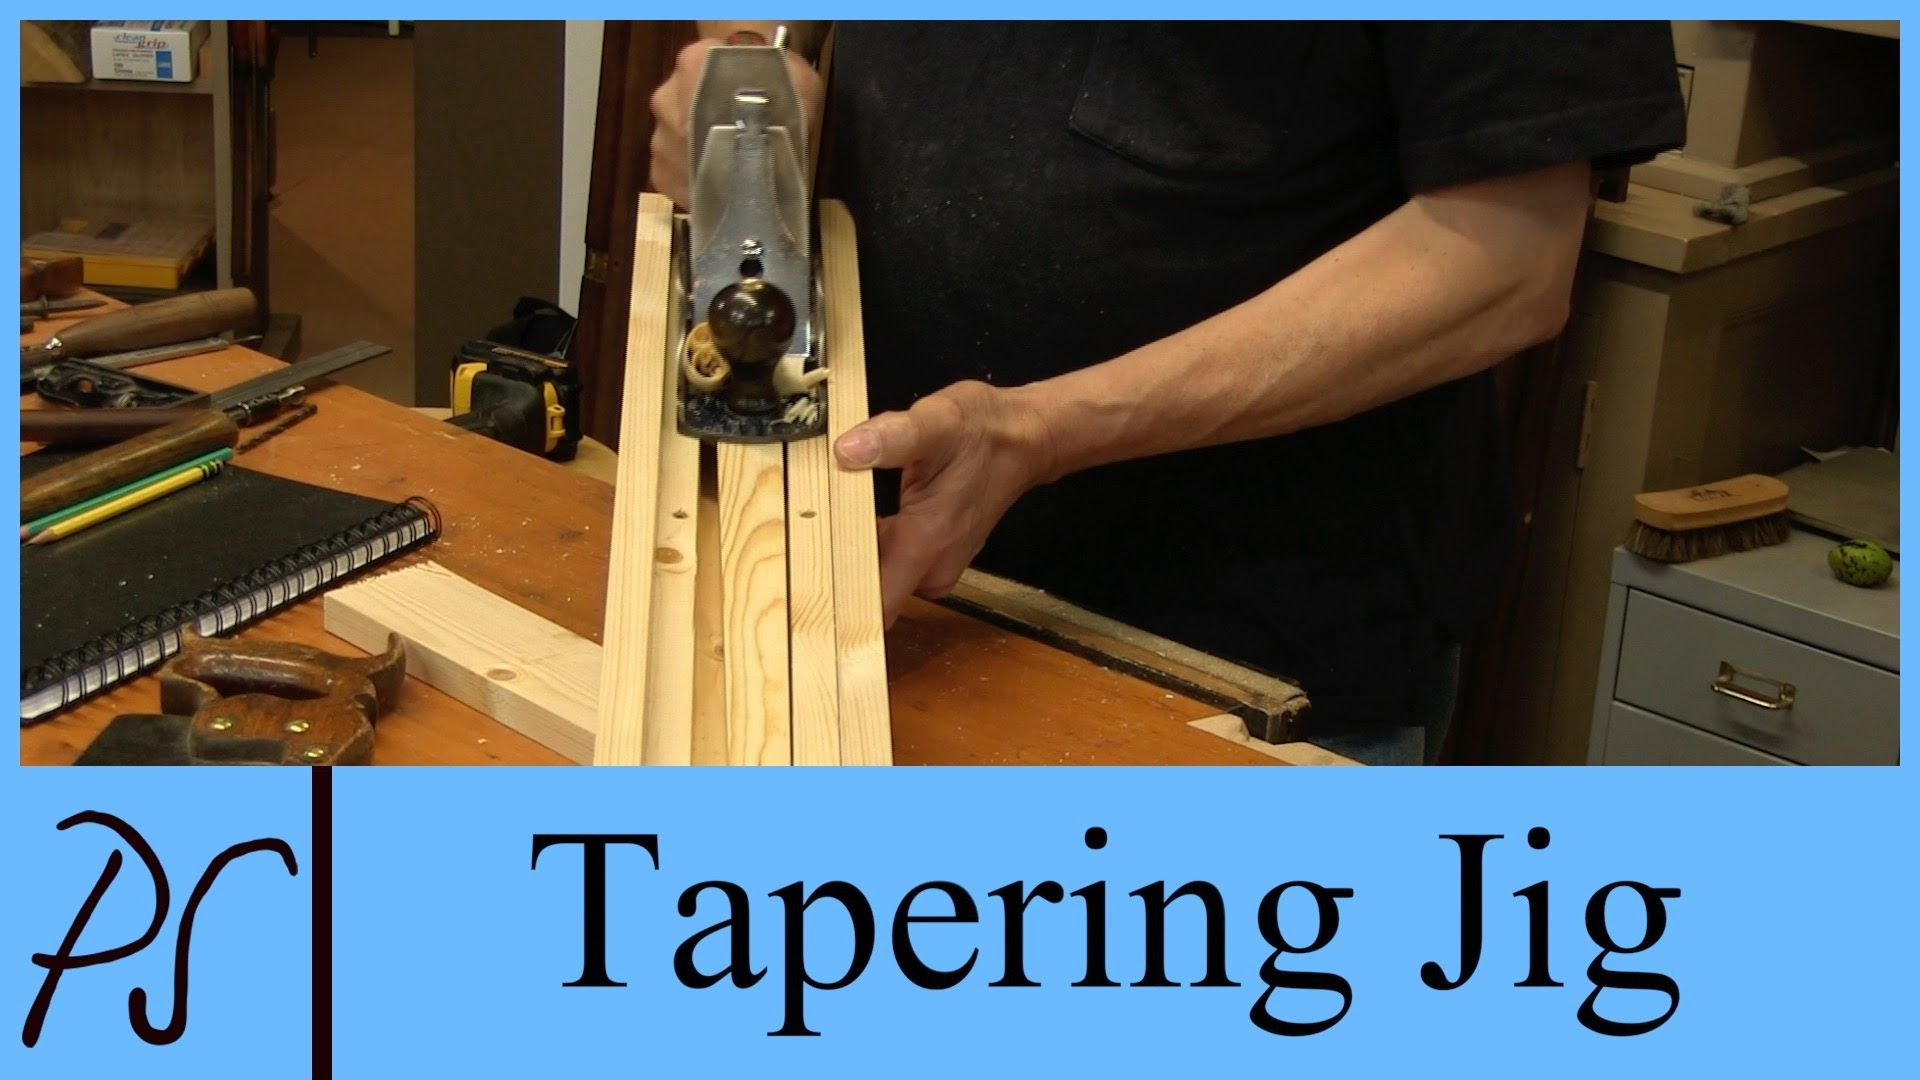 Making A Tapering Jig With Paul Sellers Woodworking Jig Diy Projects Engineering